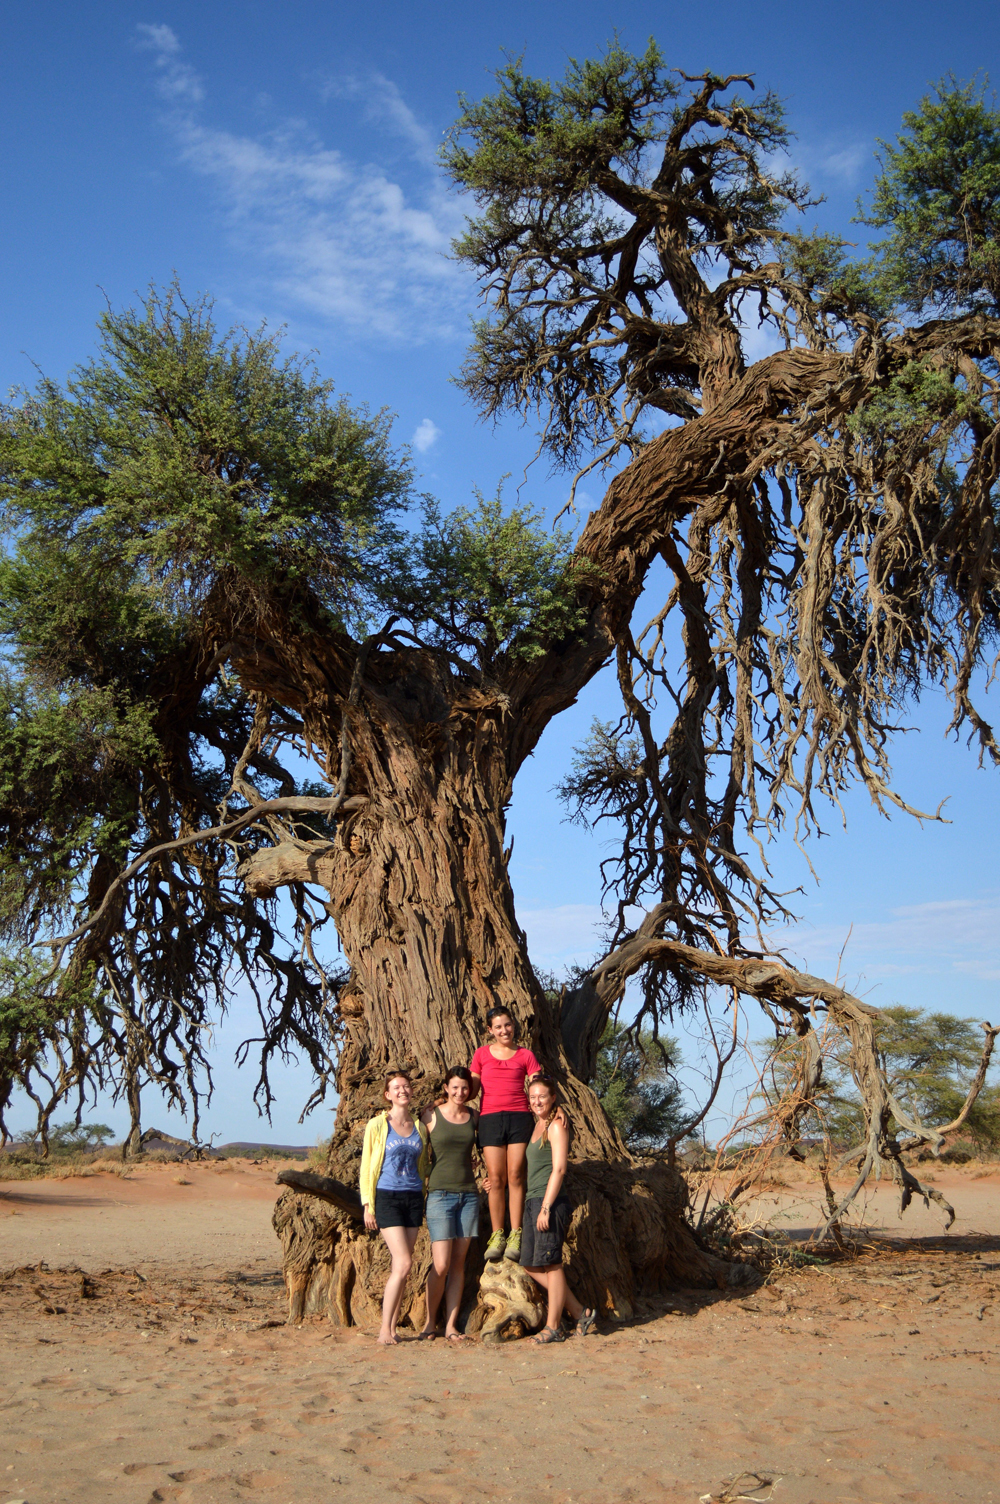 The-girly-team,-having-photo-shoot-at-a-very-old-and-big-camelthorn-tree